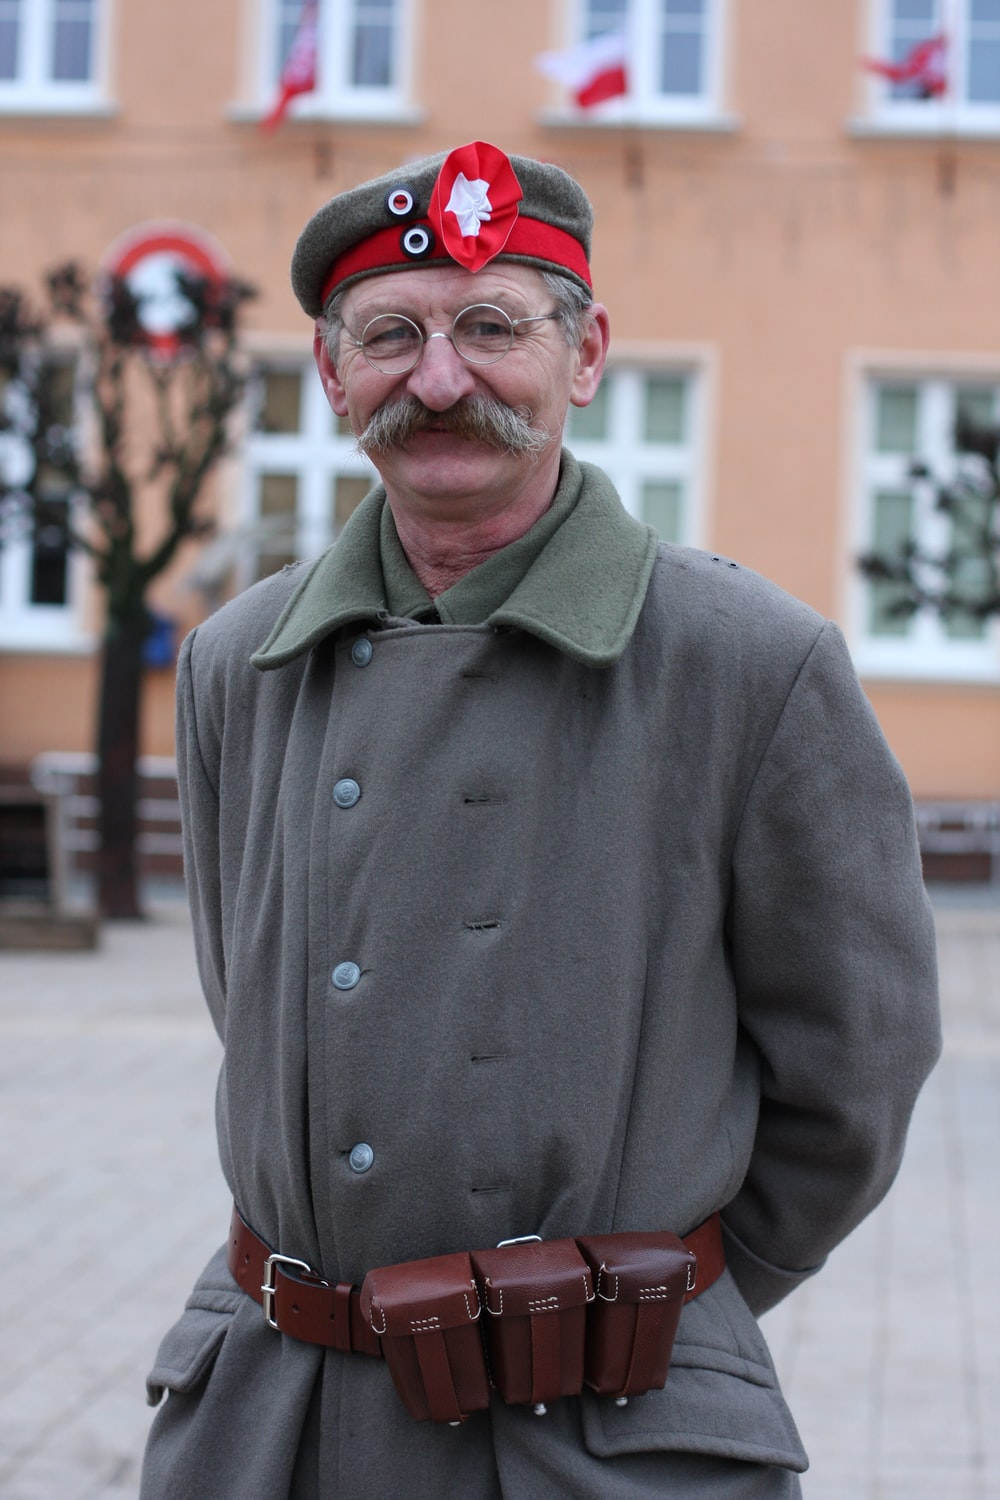 man in green coat wearing red cap standing on street during daytime